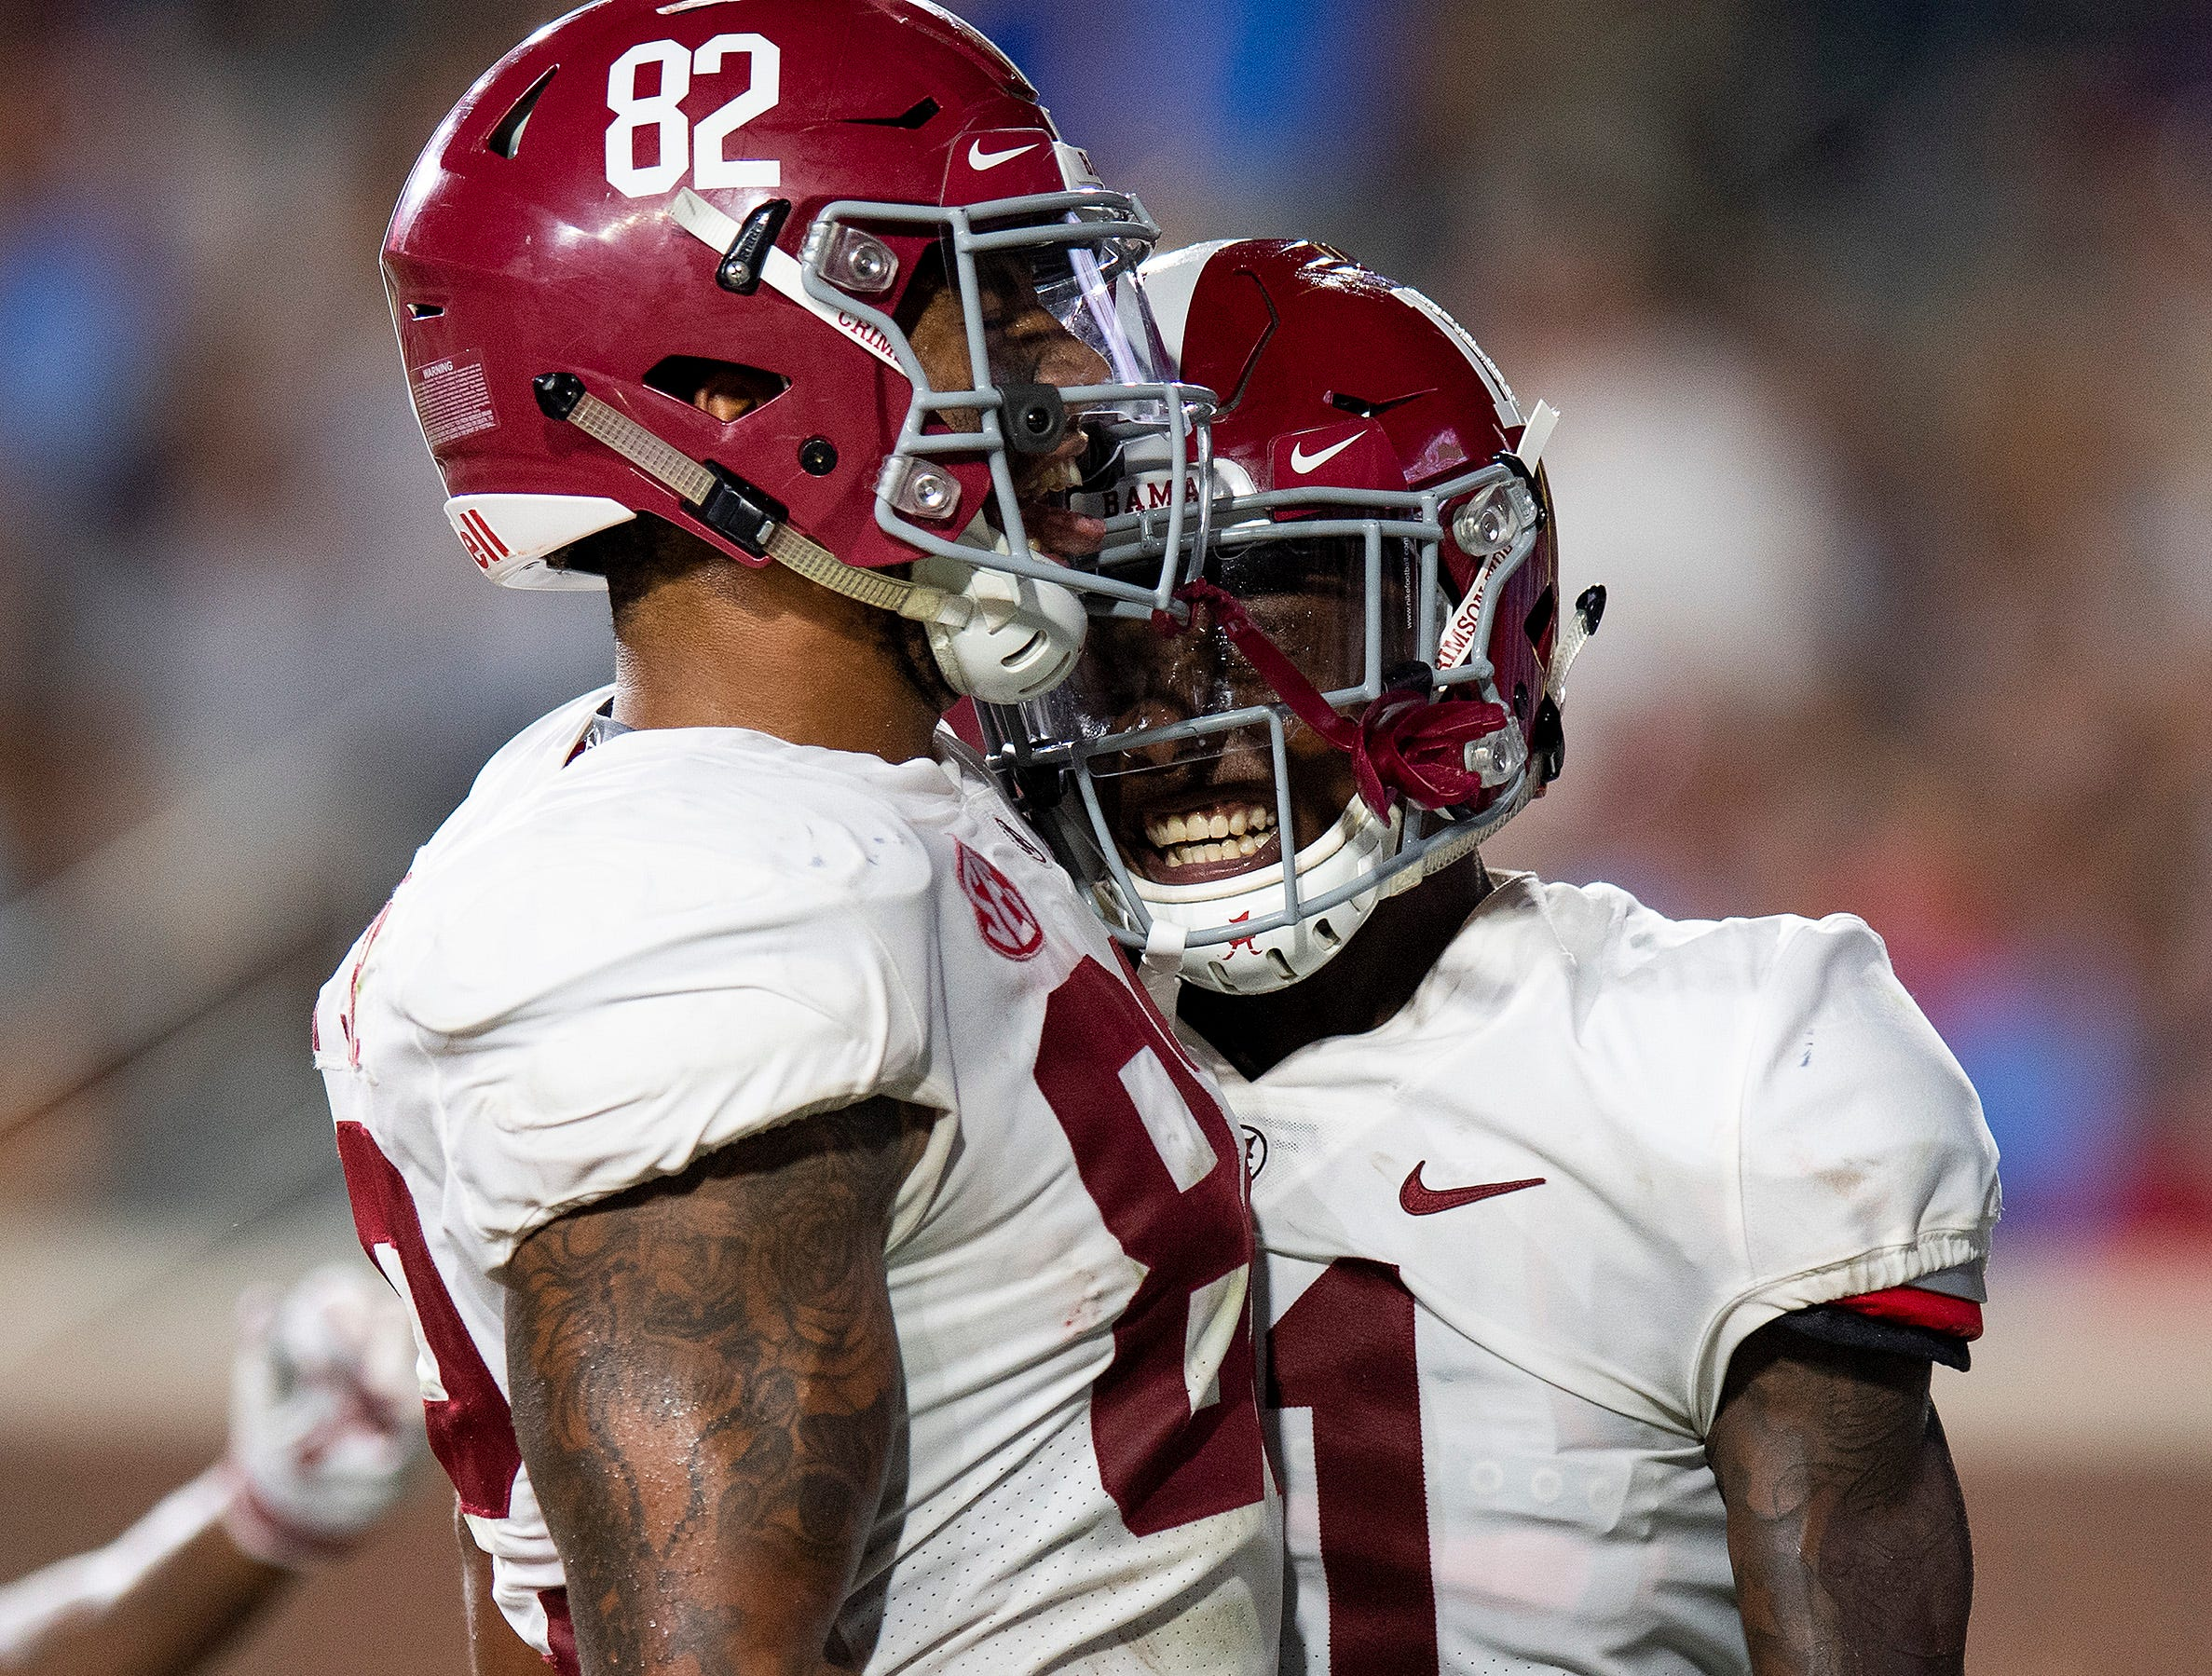 Alabama tight end Irv Smith Jr. (82) and wide receiver Henry Ruggs, III, (11) celebrate Ruggs touchdown catch against Ole Miss In first half action in Oxford, Ms., on Saturday September 15, 2018.